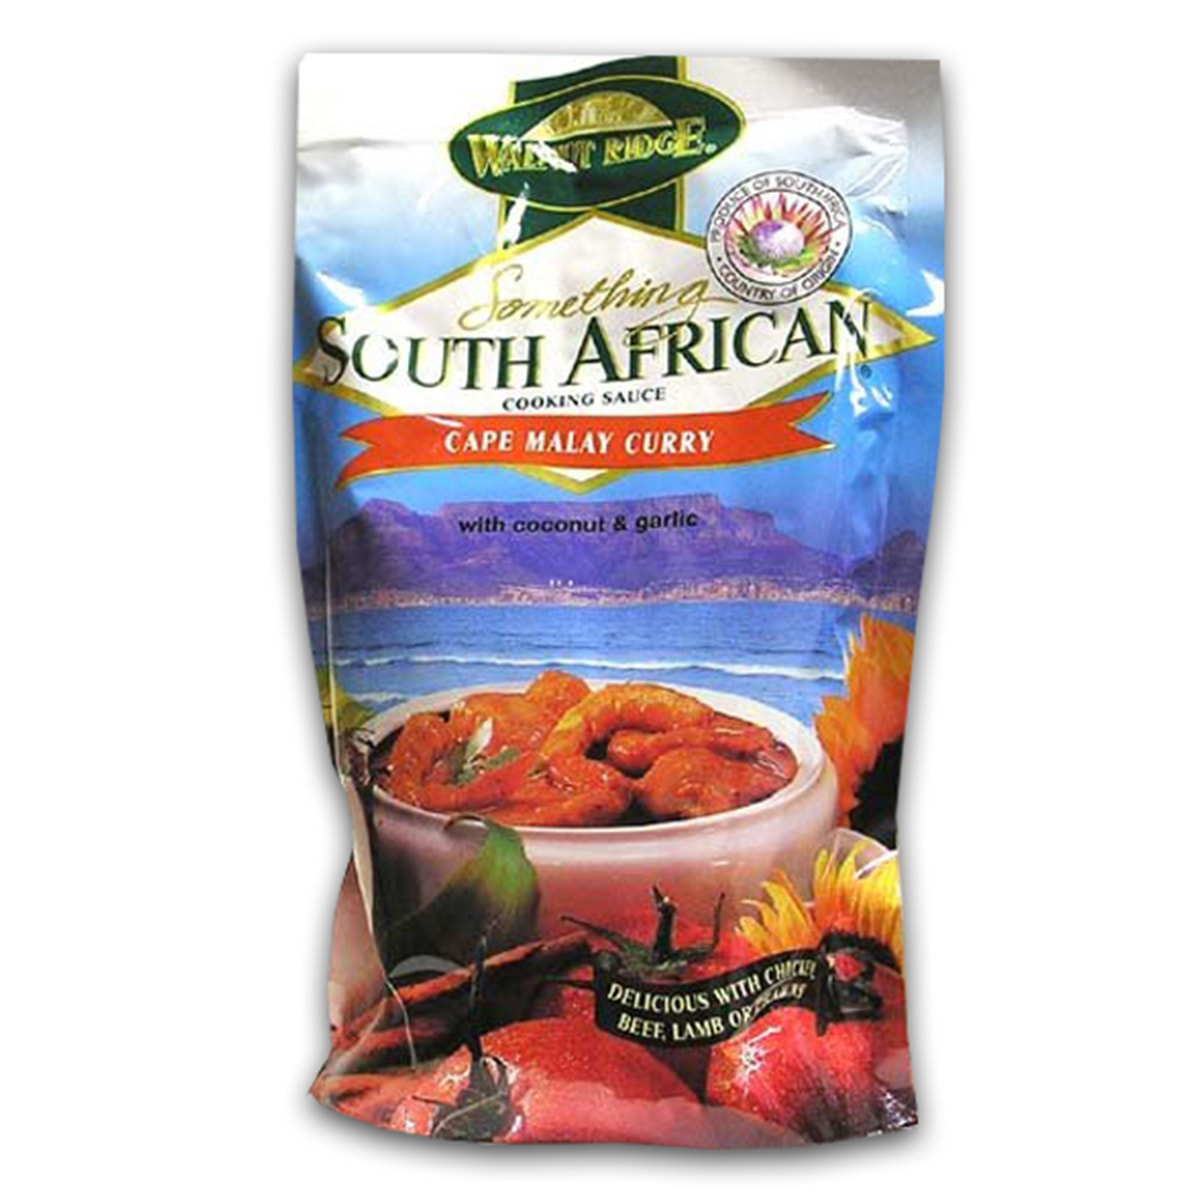 Buy Something South African Cape Malay Curry Cooking Sauce - 400 gm